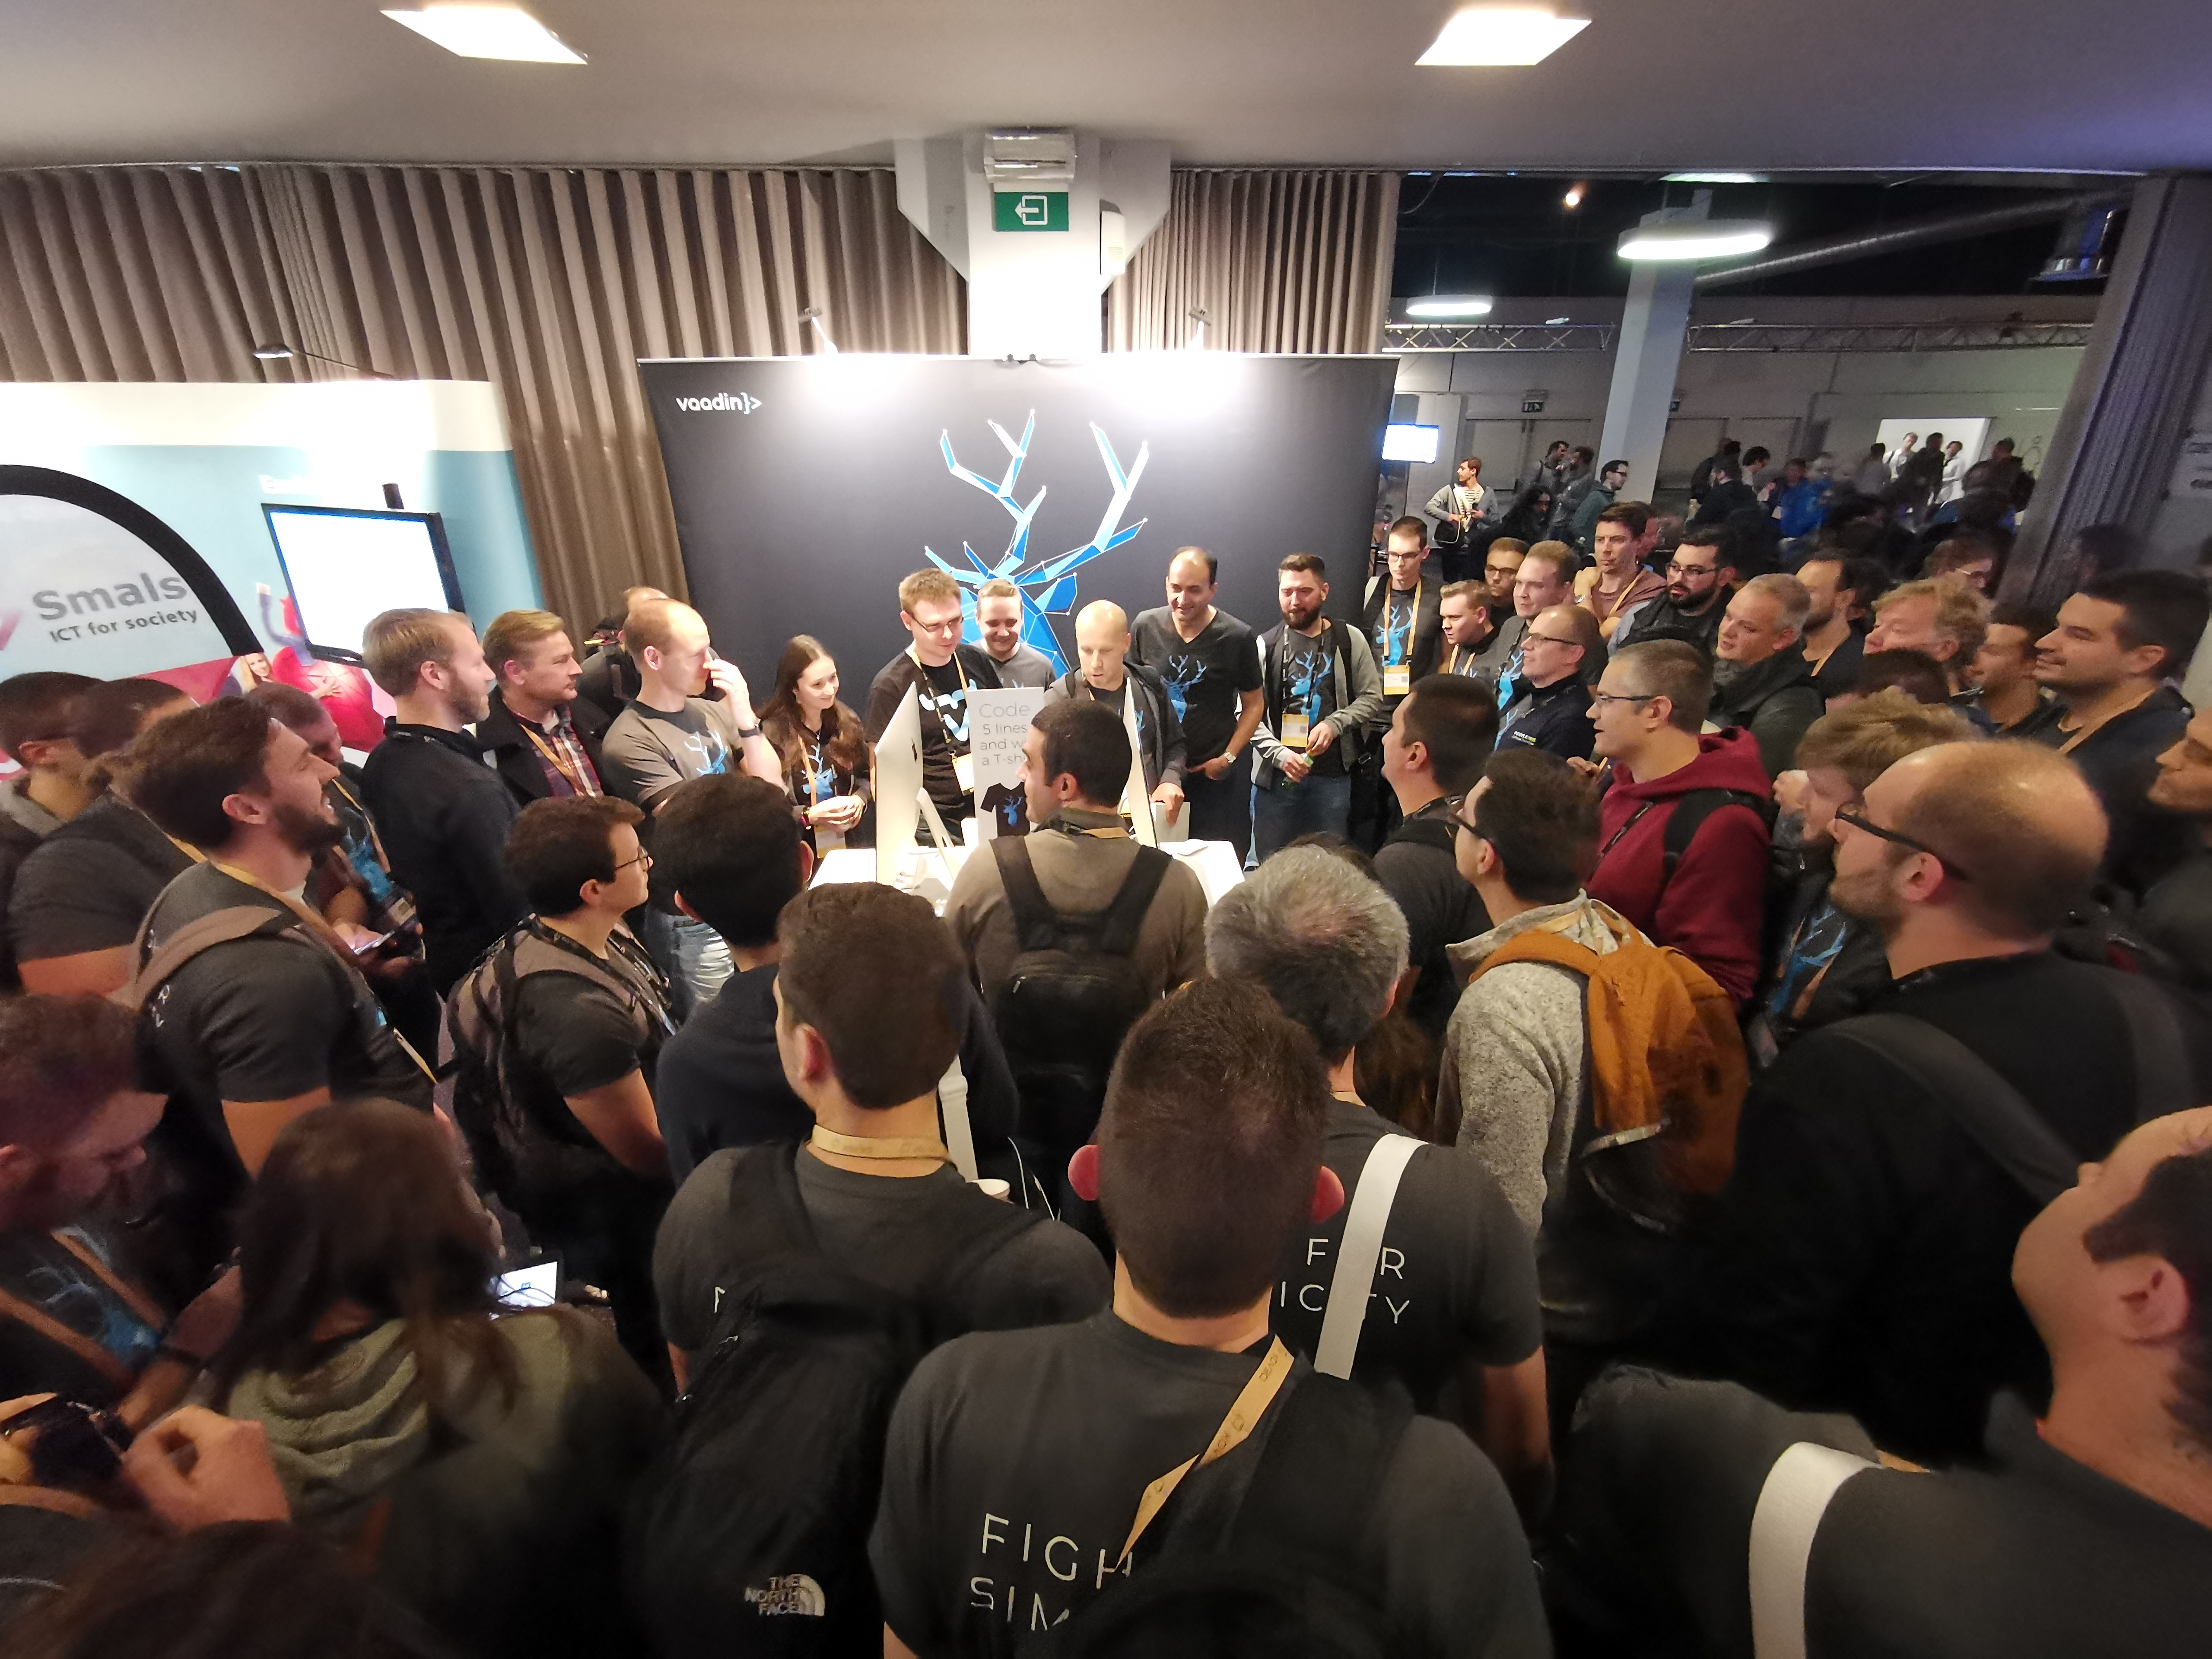 The Vaadin booth was fully crowded throughout the conference.